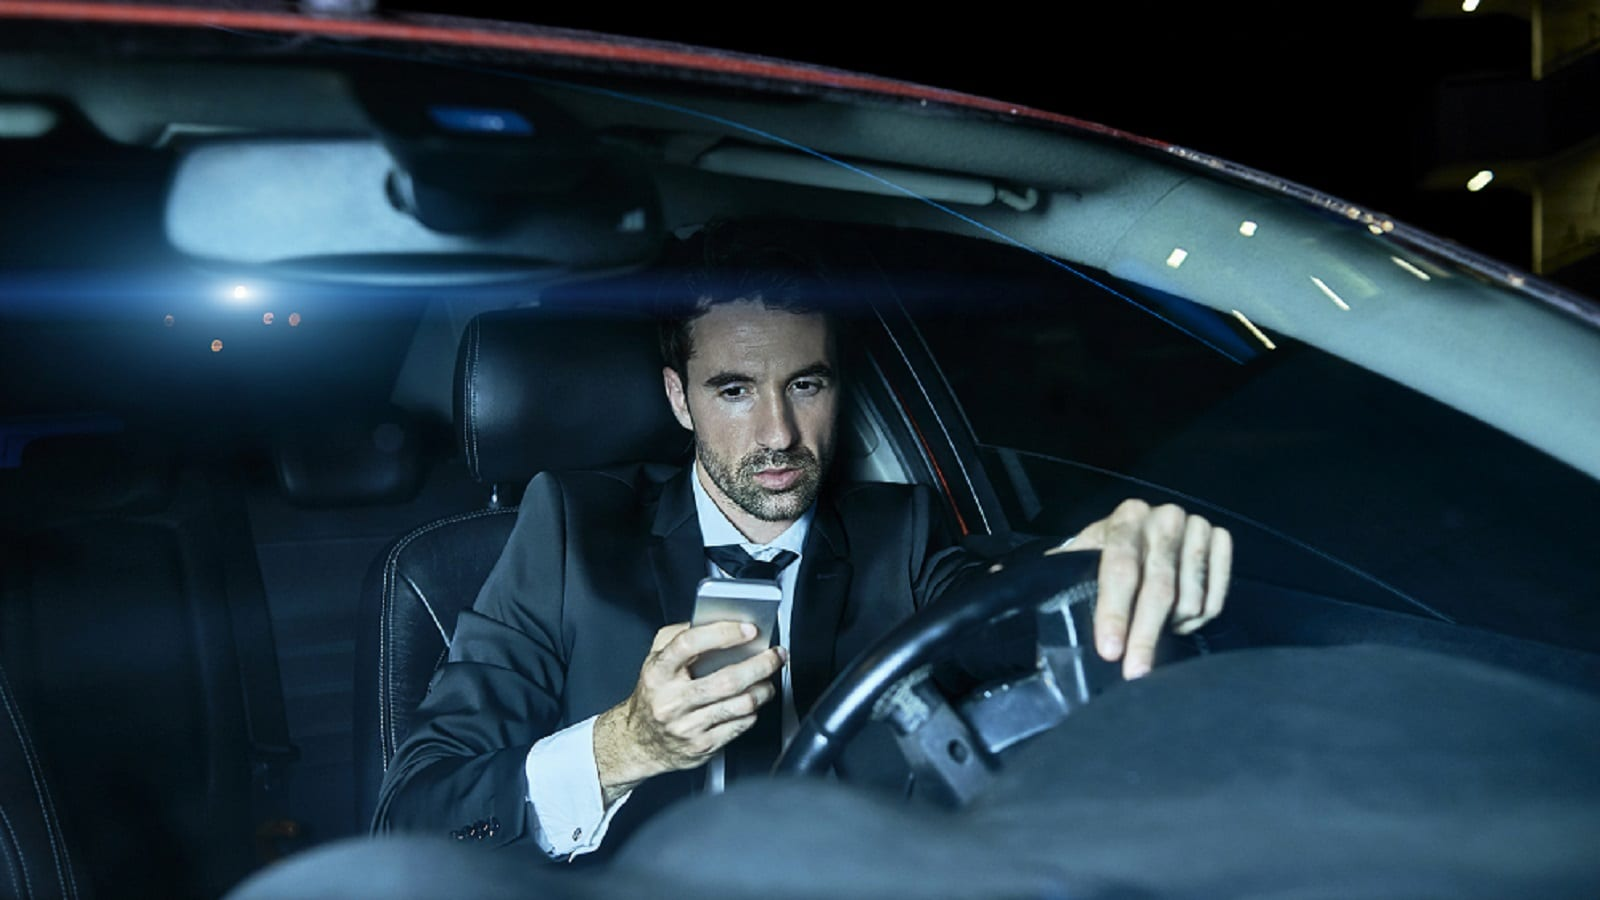 Man In Business Suit Texting While Driving